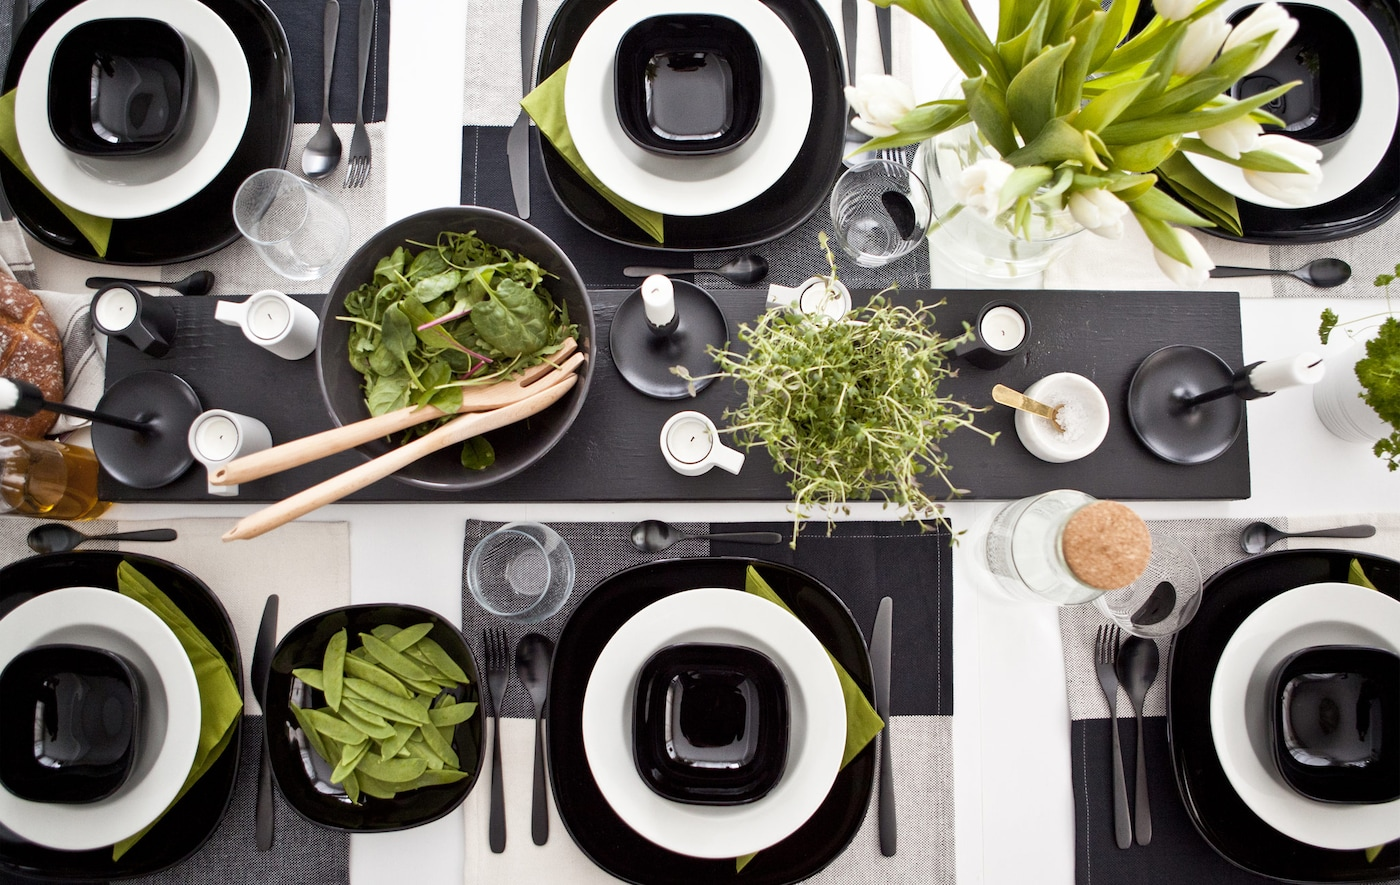 A monochrome table setting with bright green accents in plants, food and napkins.